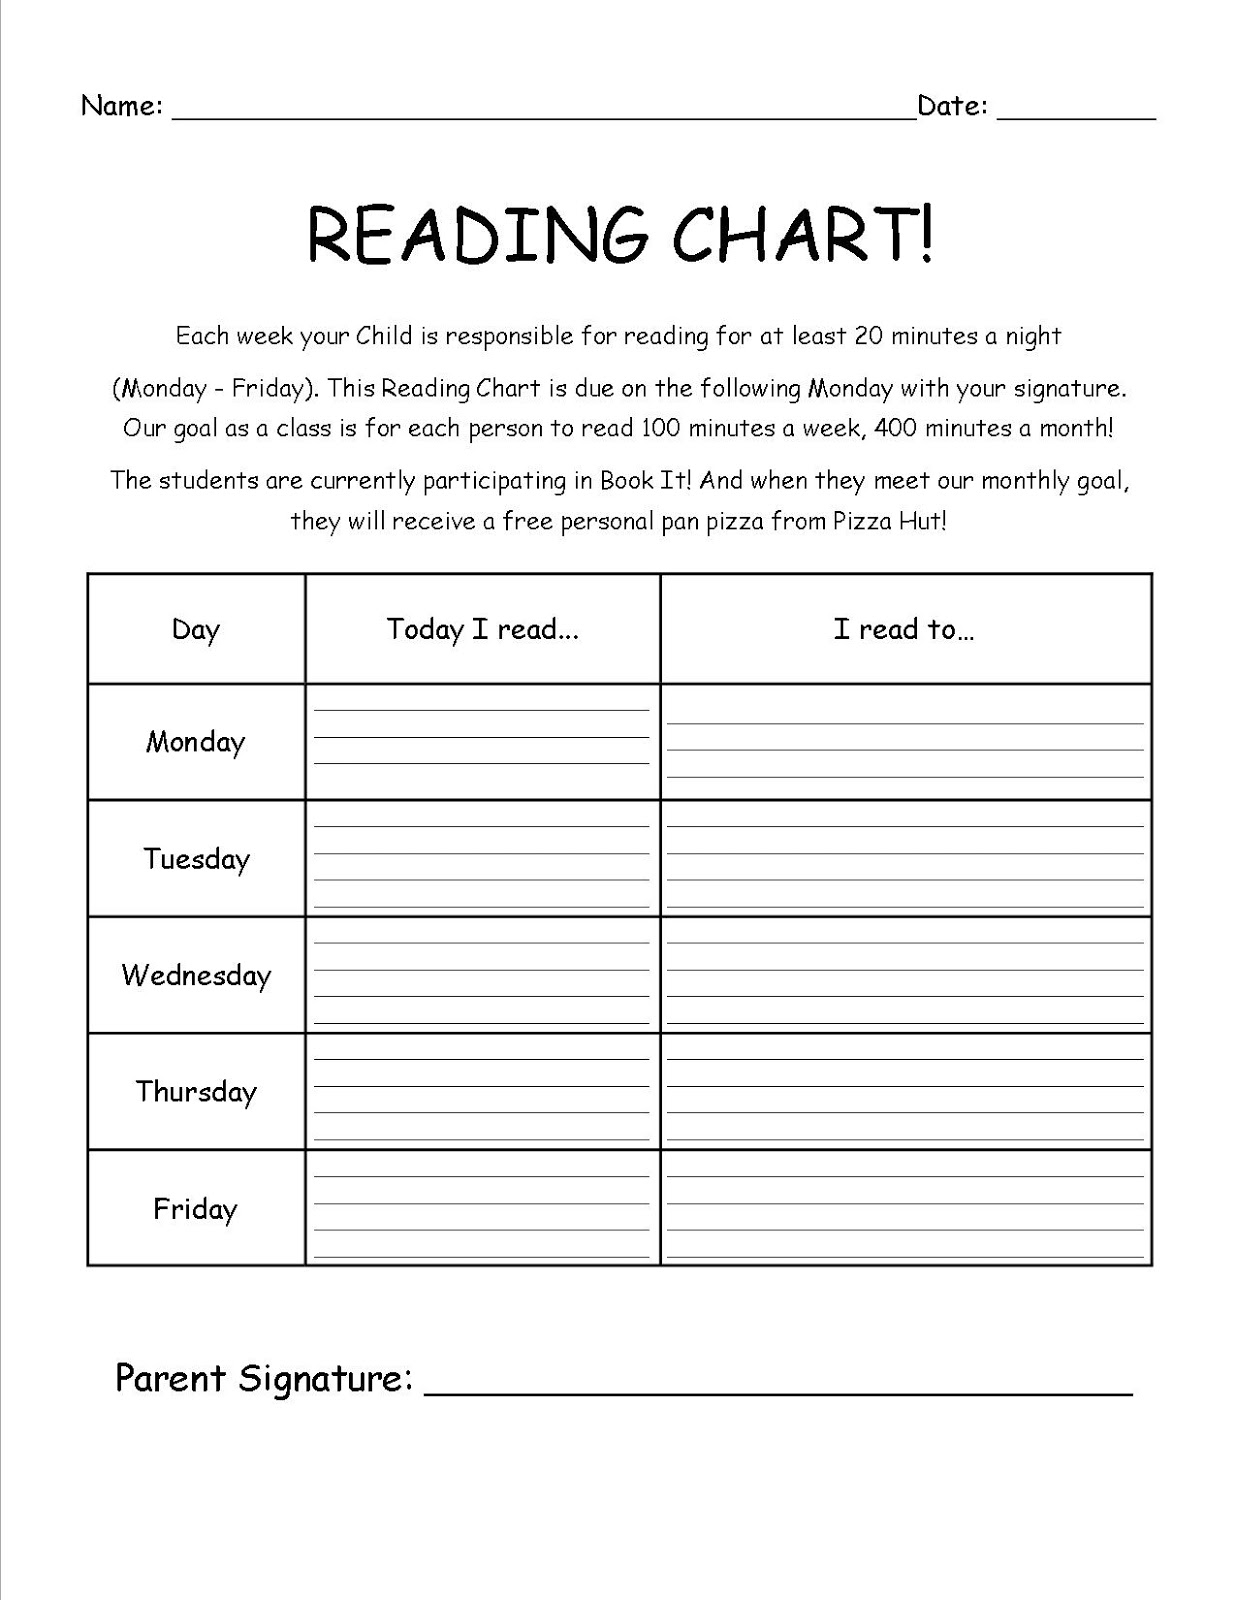 Worksheet Free Reading Comprehension Ks2 Worksheets Printable free printable reading comprehension worksheets for 6th grade fifth amp printables